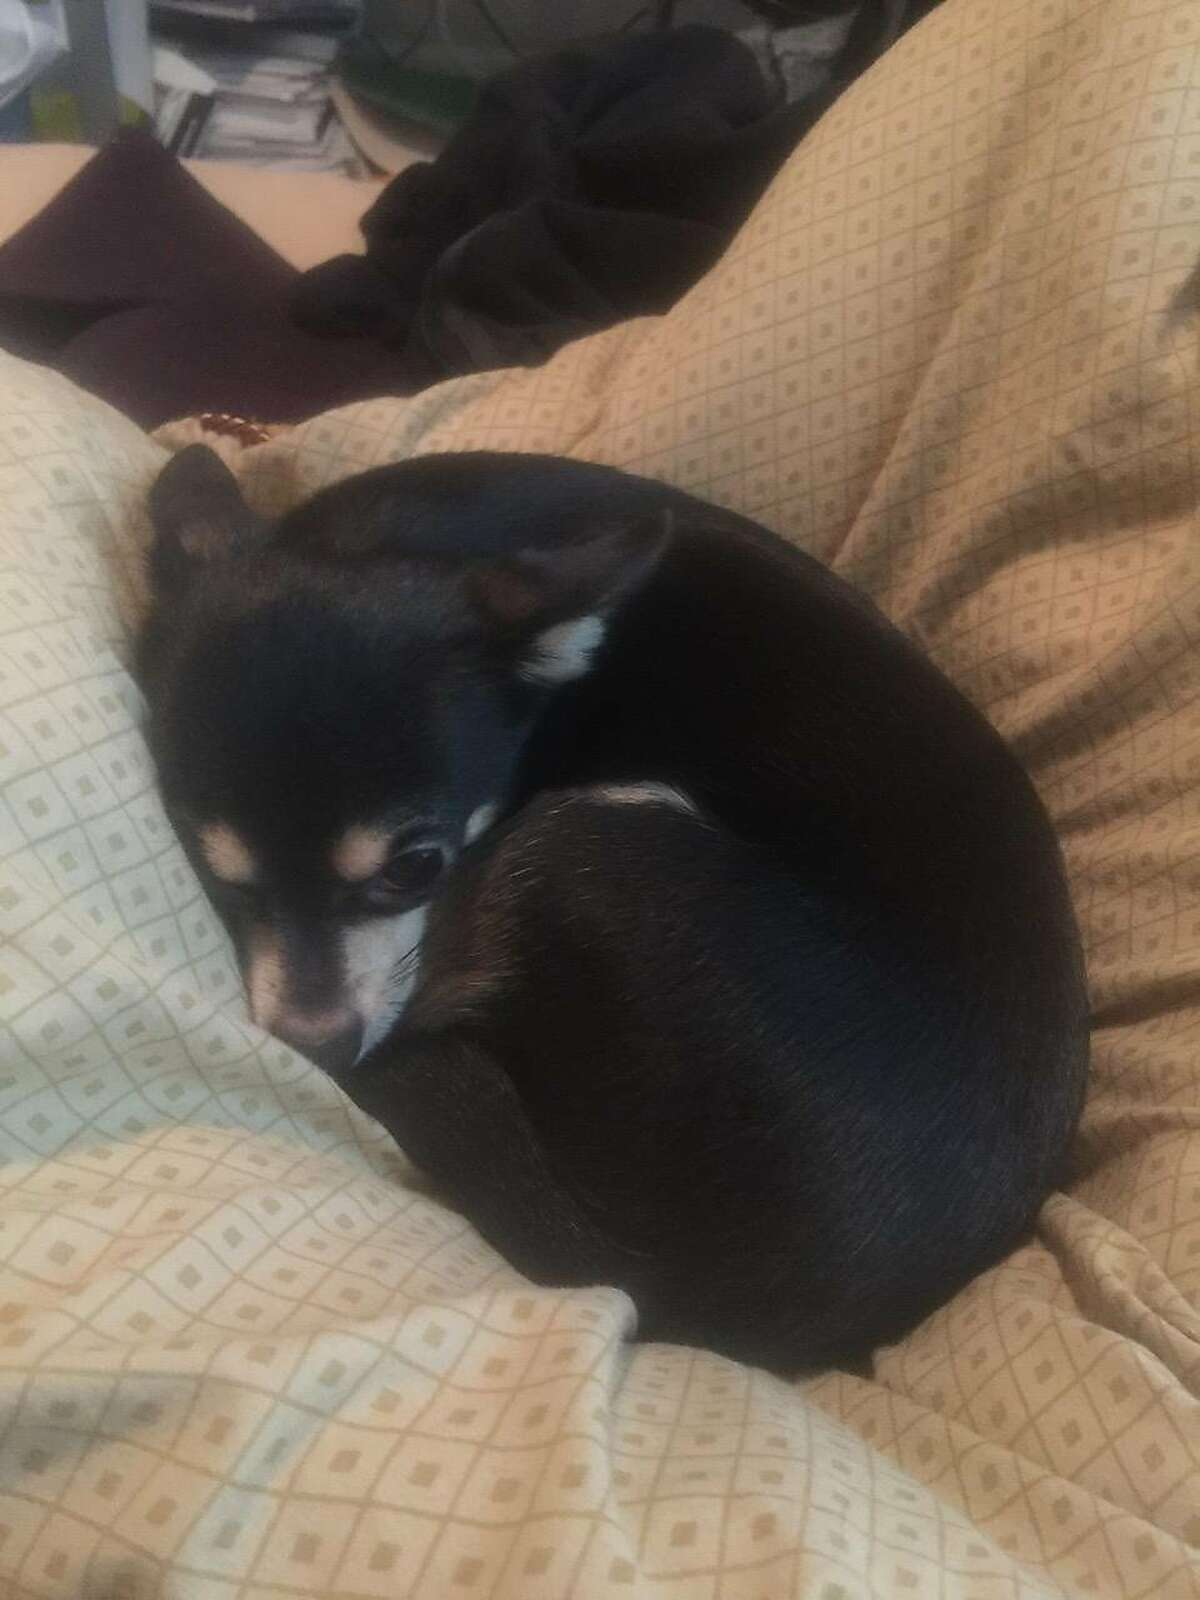 Dunky, a 4-year-old Chihuahua, died after a suspect broke into a car and threw him over a railing near San Francisco�s Union Square, police said.